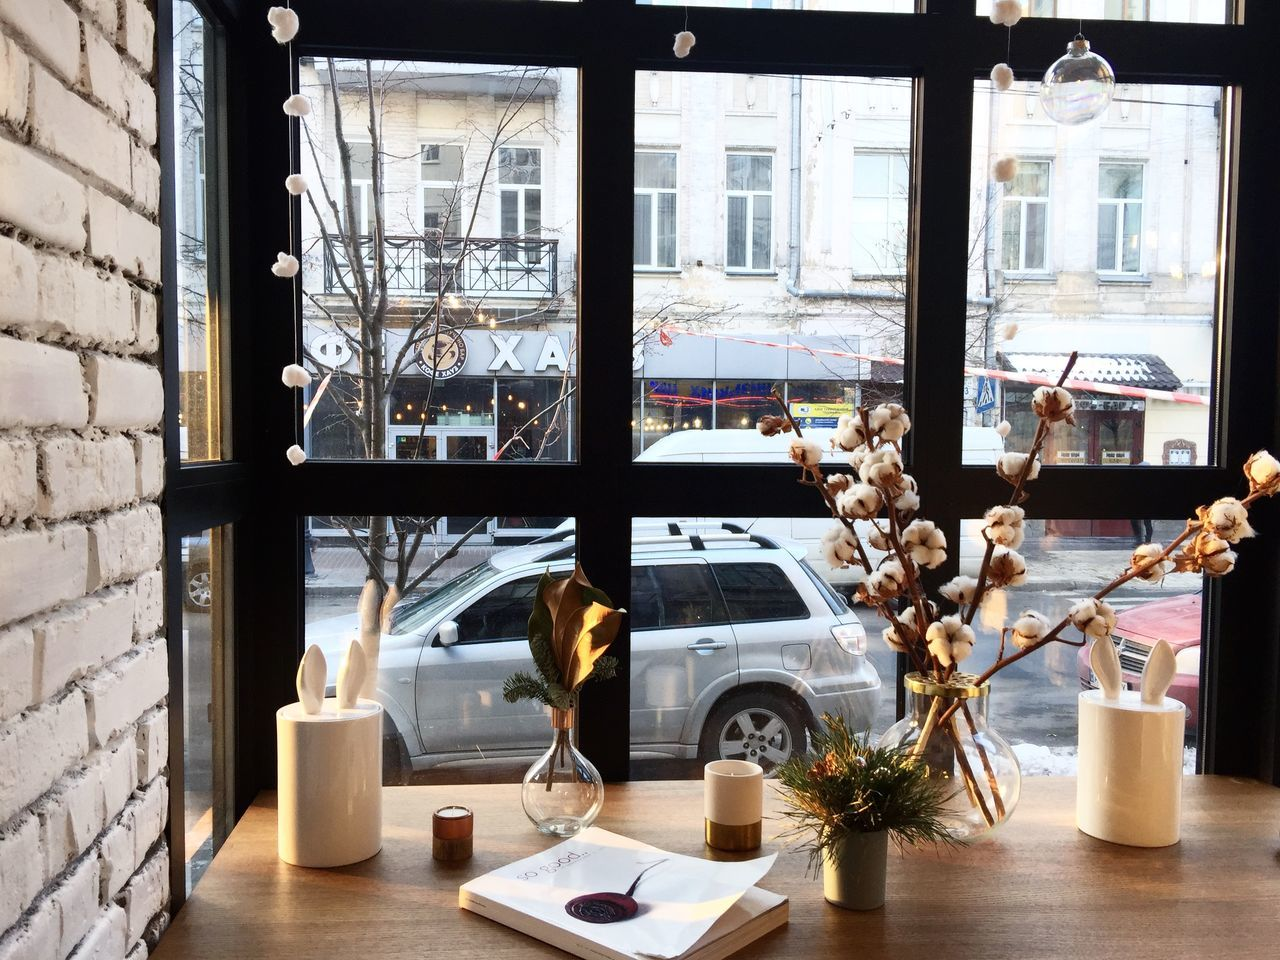 A view at the window of the restaurant which is decorated nicely Beautiful Bricks Candles City Life Cotton Cotton Flowers Day Design Indoors  Interior Design Kiev Magazine No People Restaurant Street Street Life Ukraine Vase Window